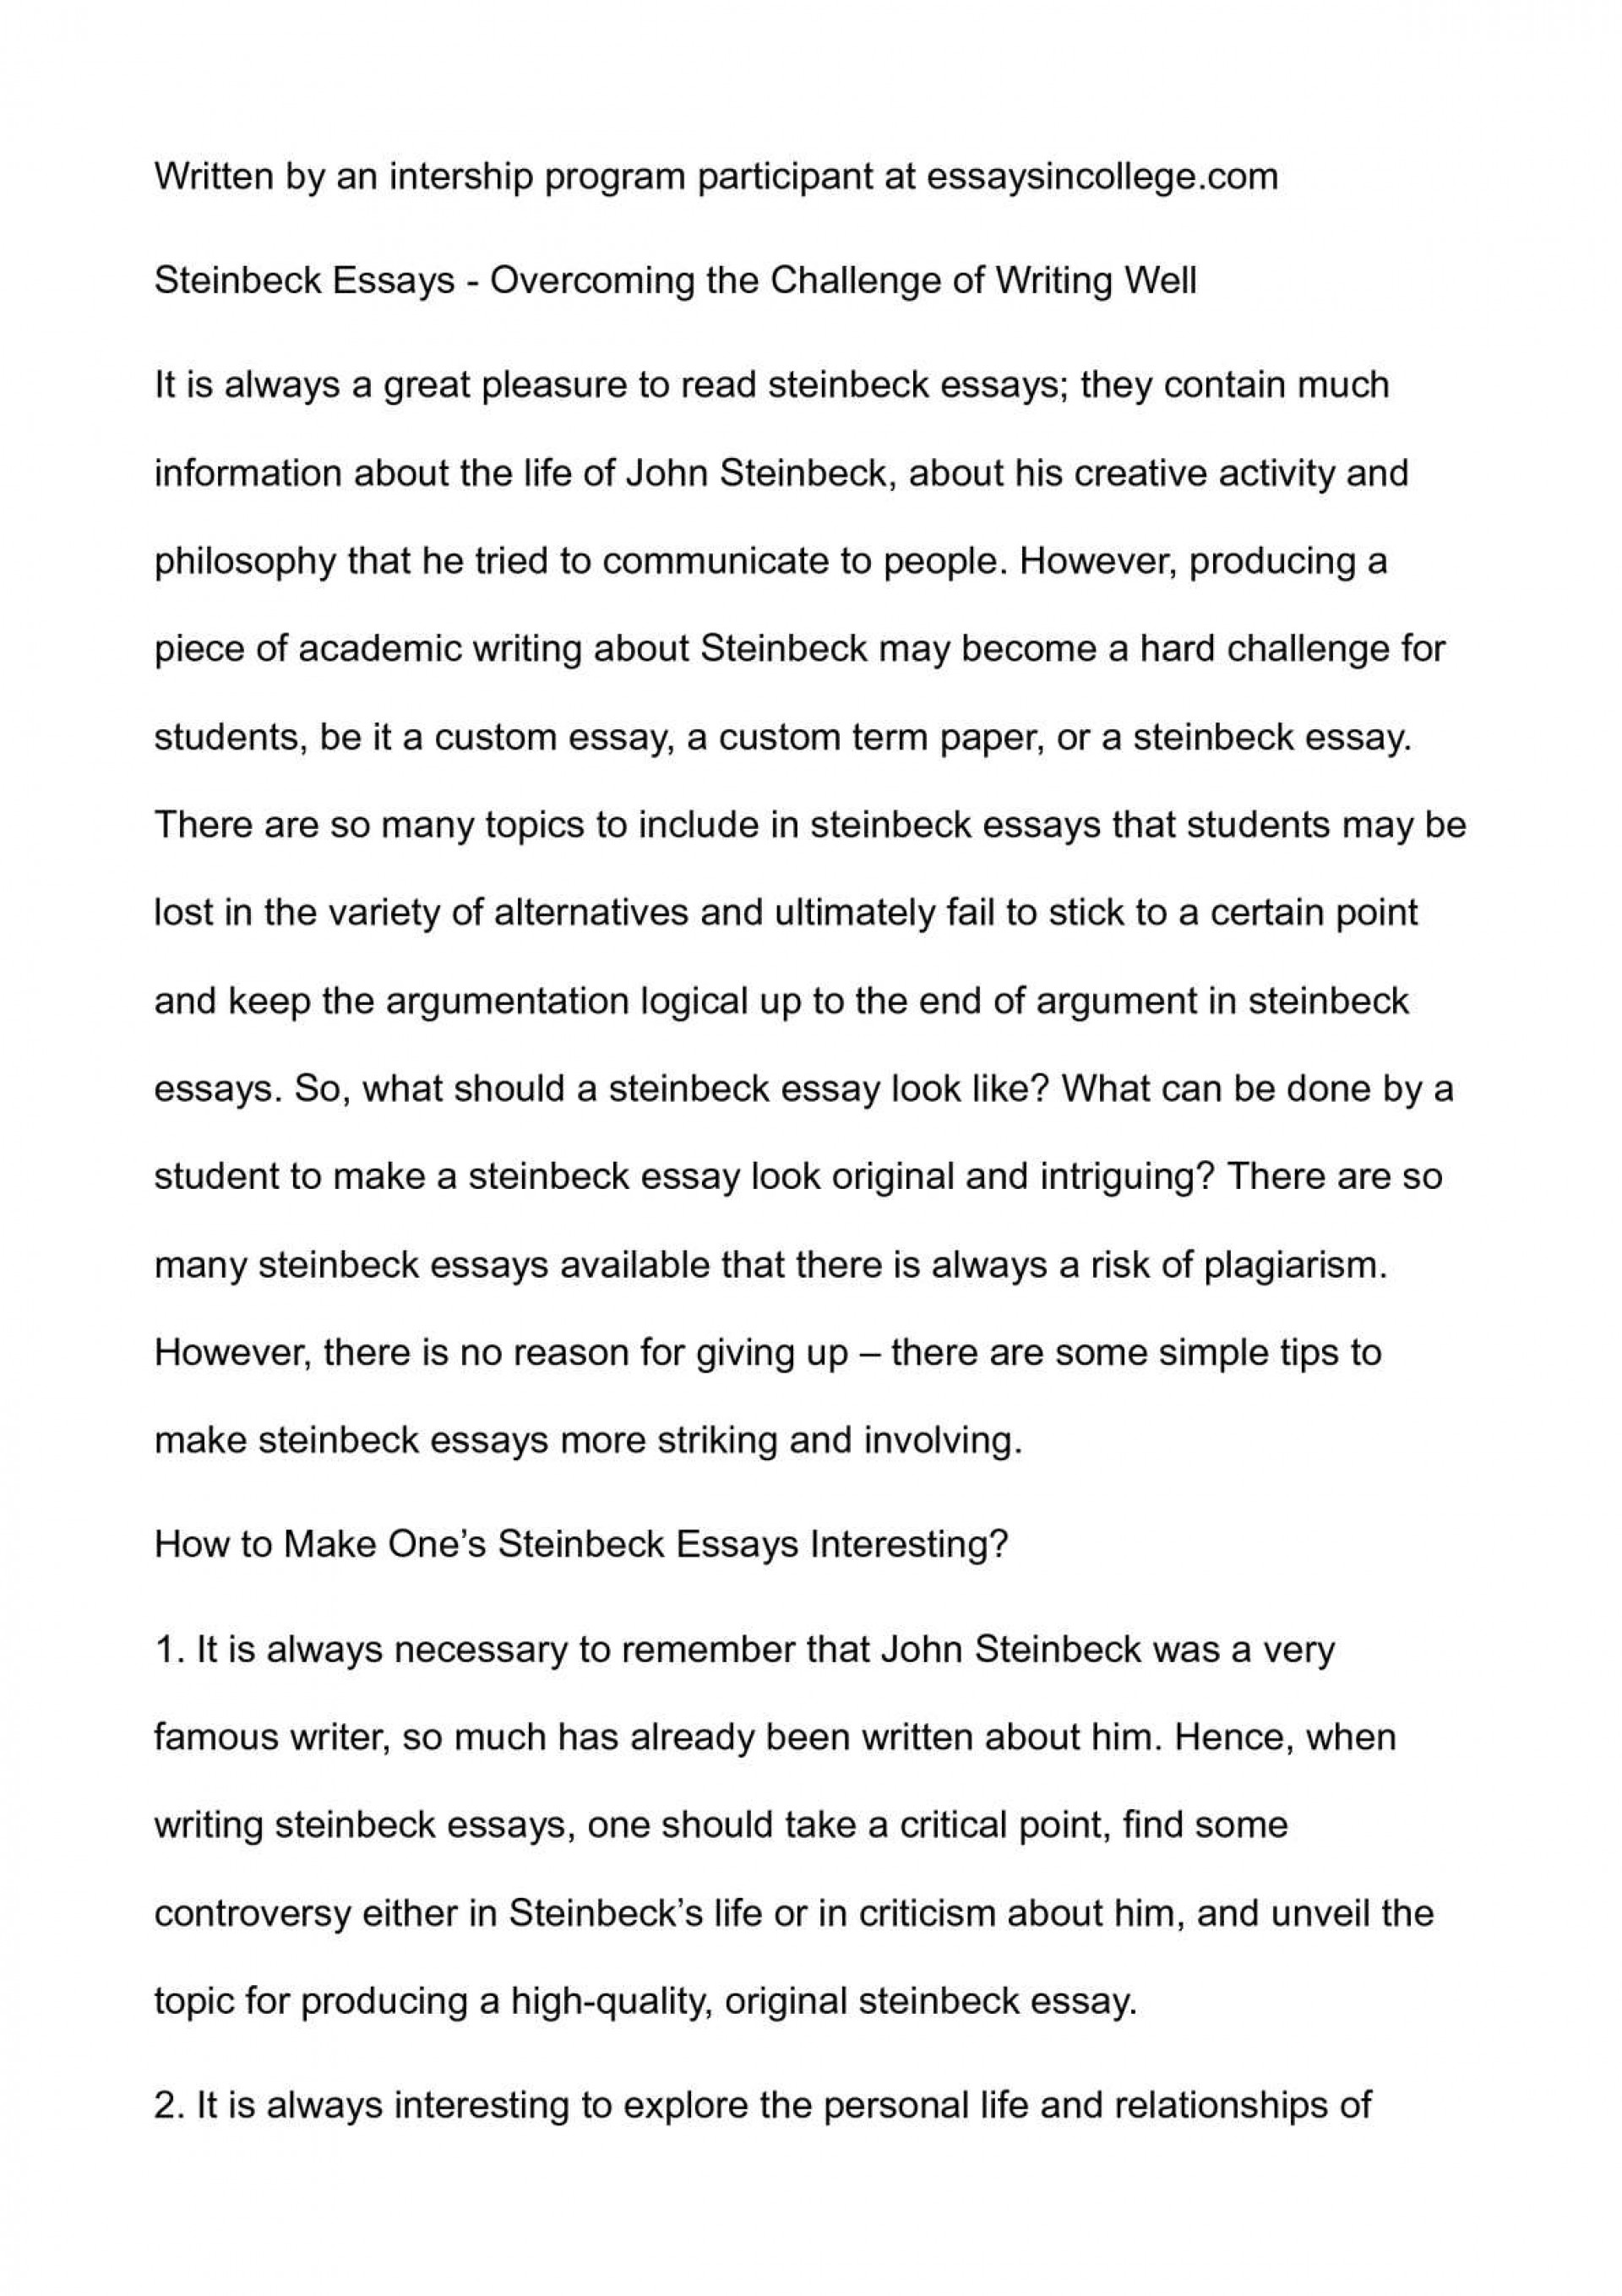 007 How An Essay Should Look P1 Unique What A Persuasive Like Does Introduction In Argumentative 1920